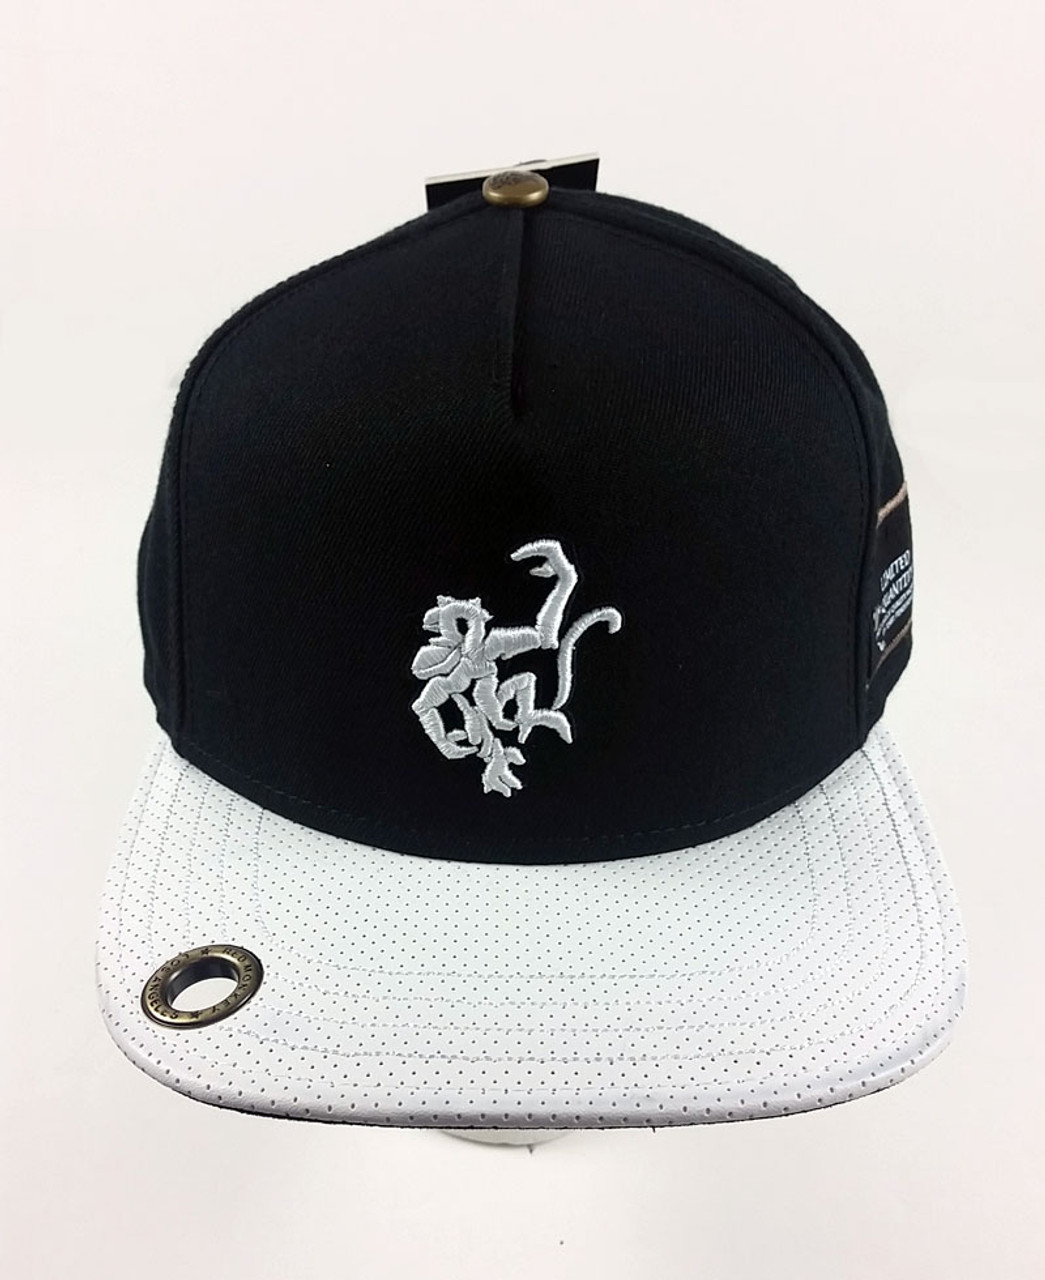 Red Monkey Wholly Logo Snap Back Cap Hat Flat White RM1059 B - HAS Style 99828a6ba7c